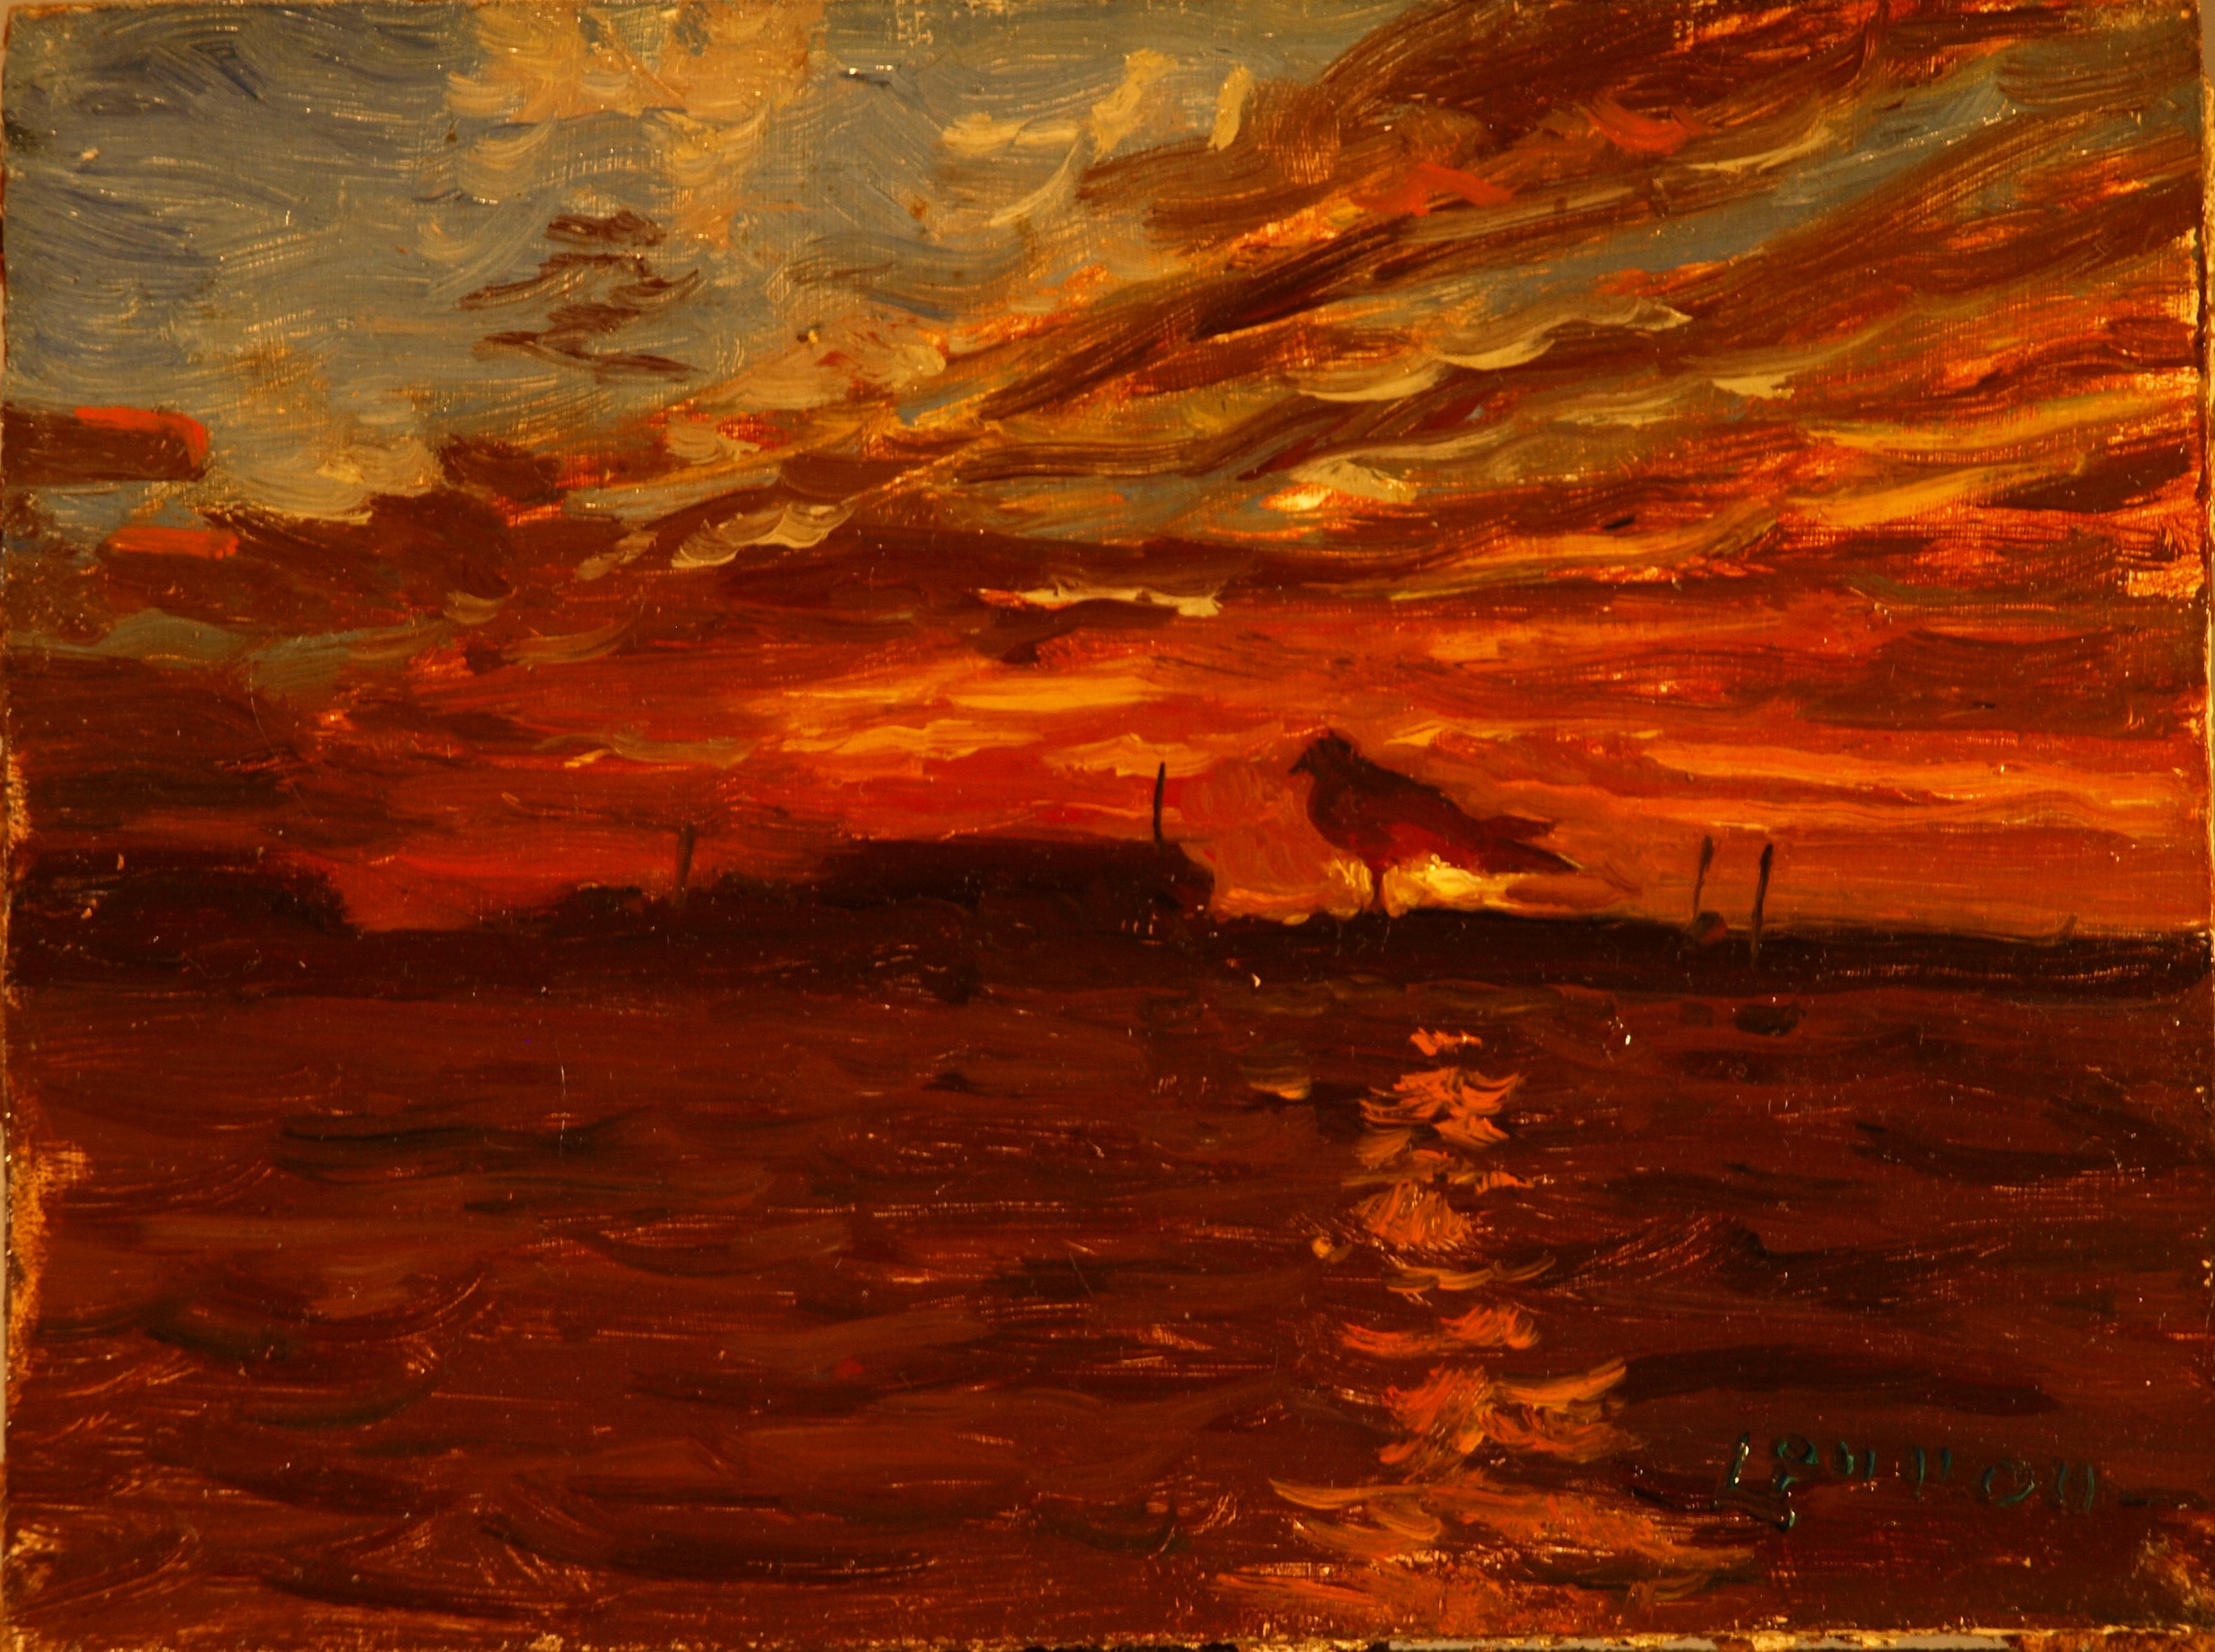 Provincetown Sunset, Oil on Panel, 6 x 8 Inches, by Bernard Lennon, $175